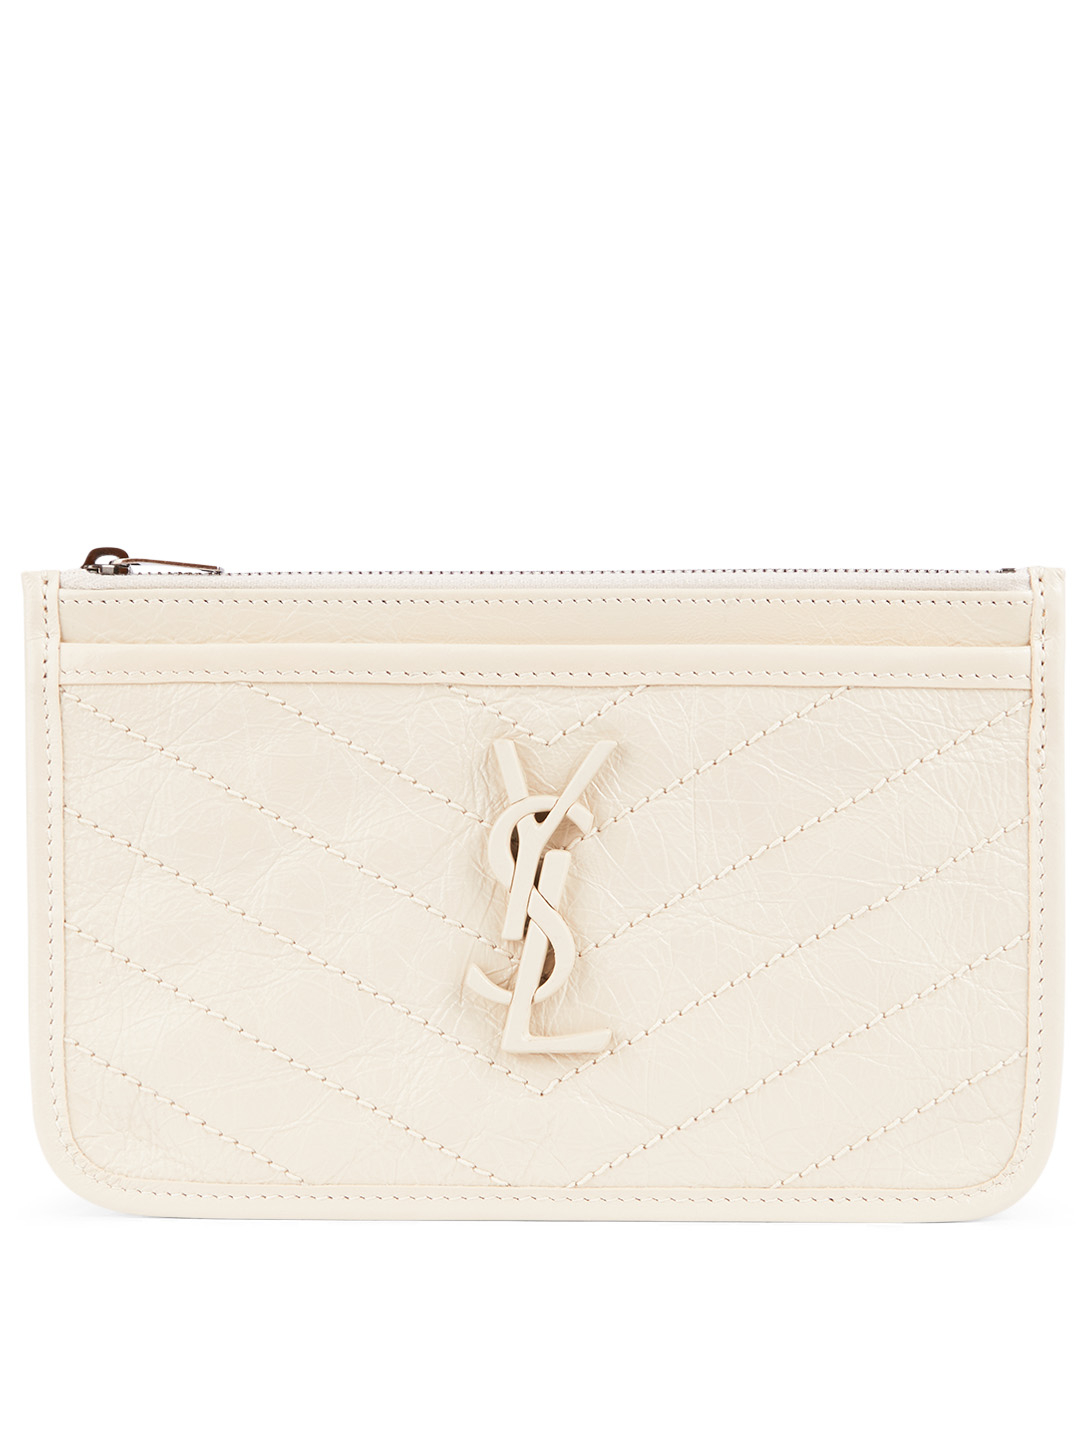 SAINT LAURENT Niki YSL Monogram Leather Pouch Women's White